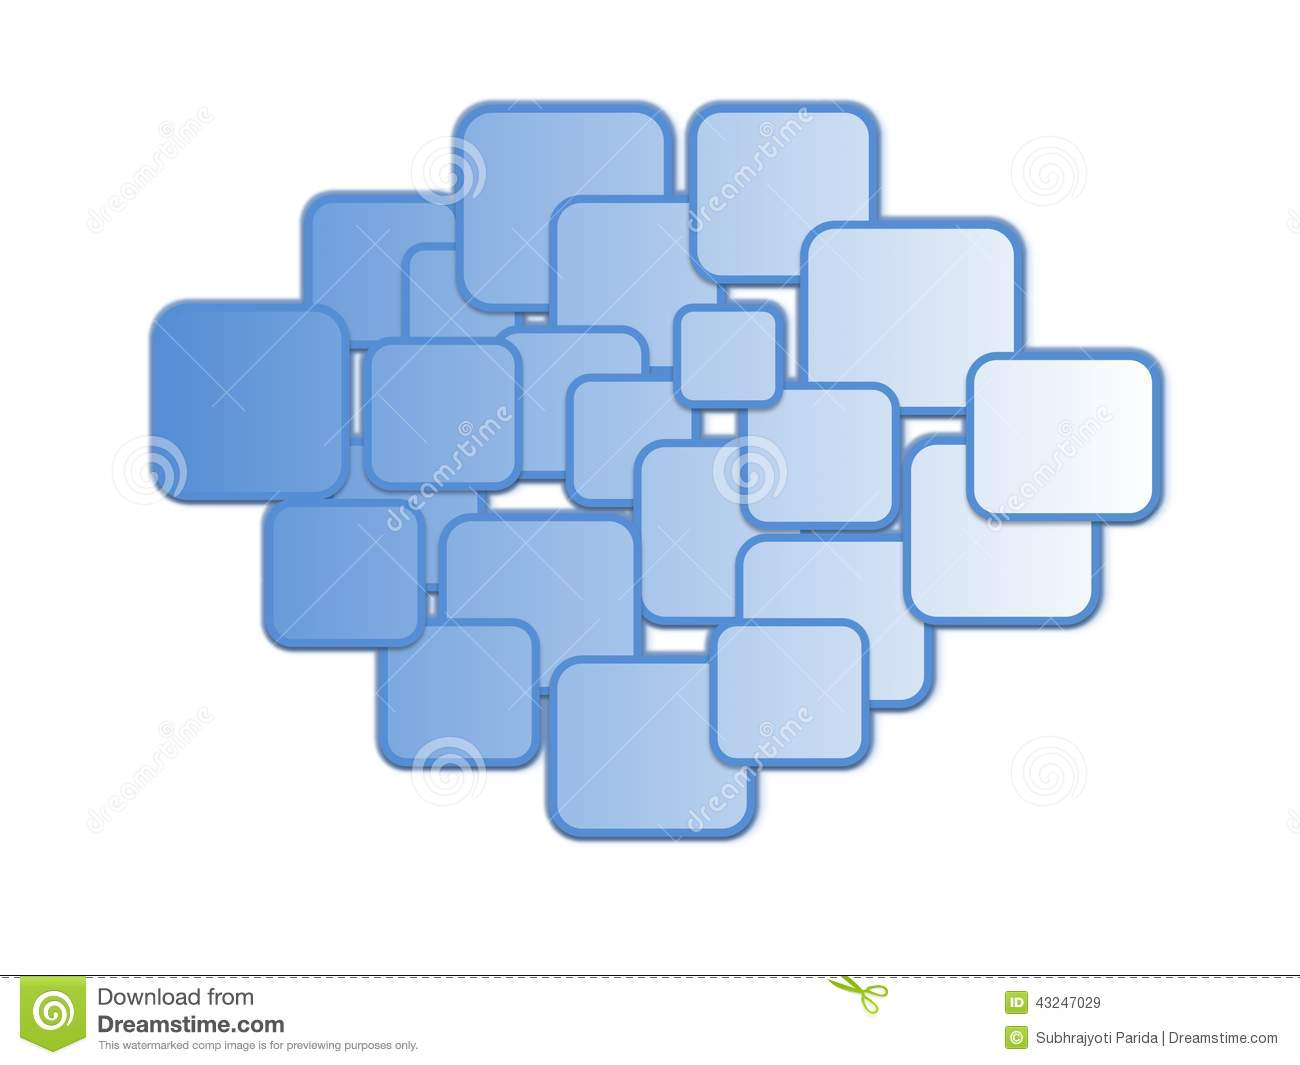 A pattern of blue coloured boxes